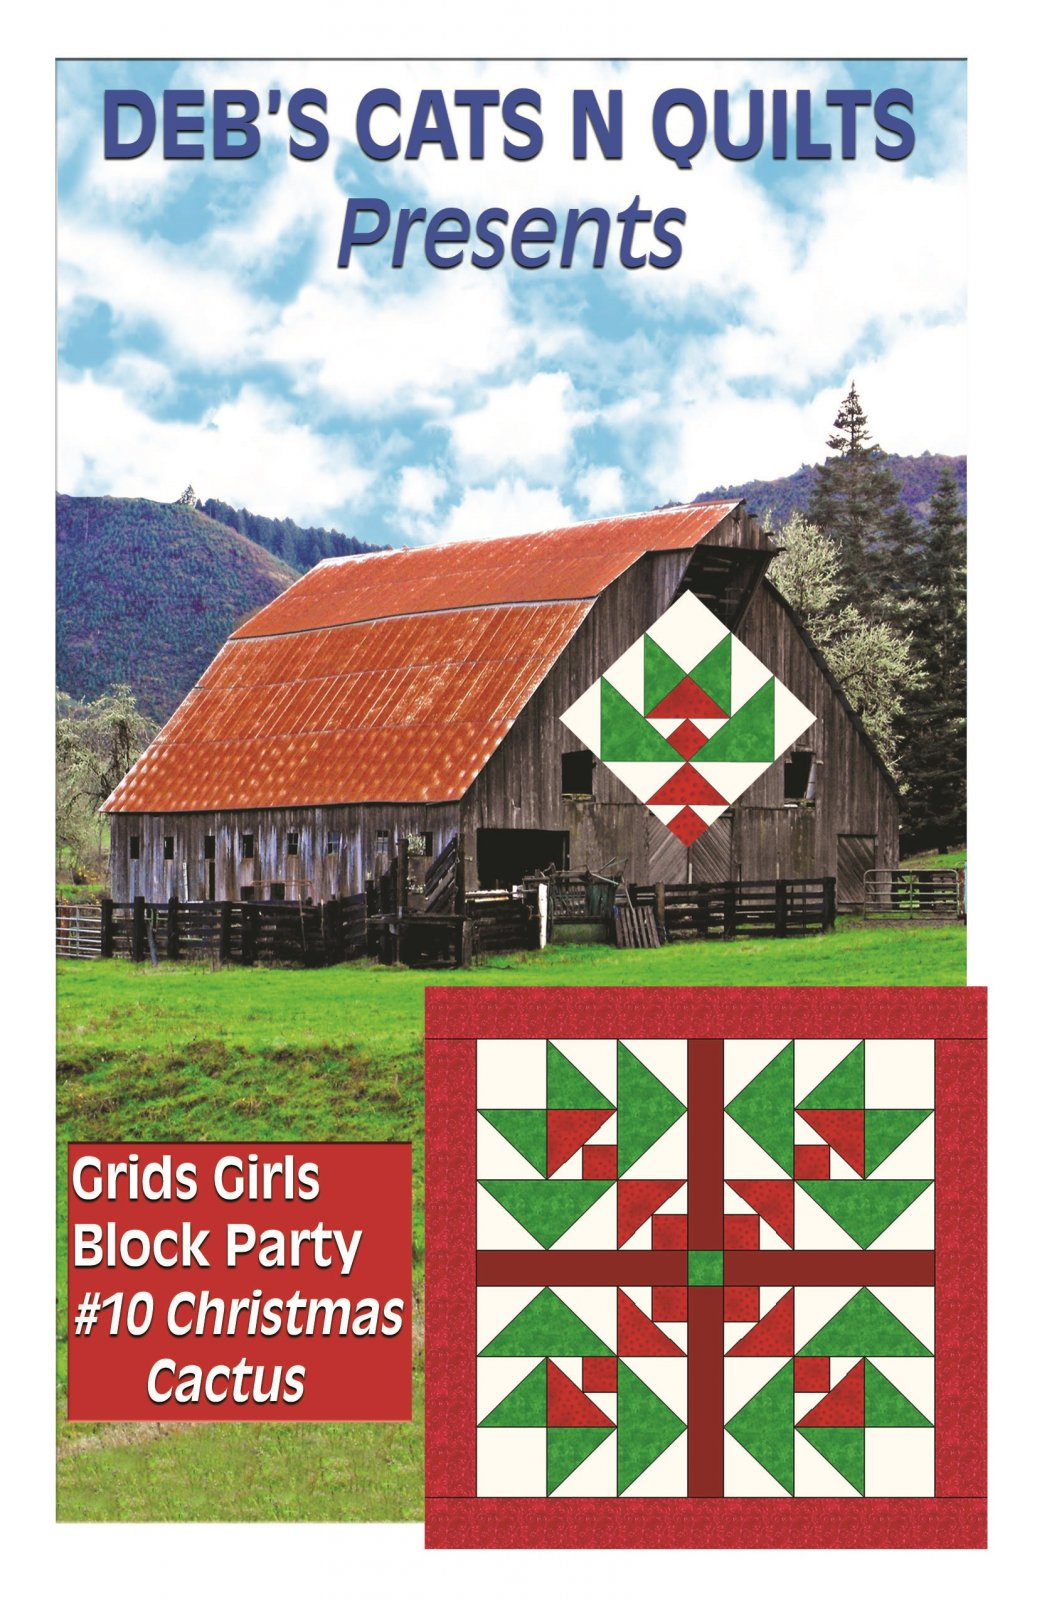 Christmas Cactus- Grids Girls Block Party # 10